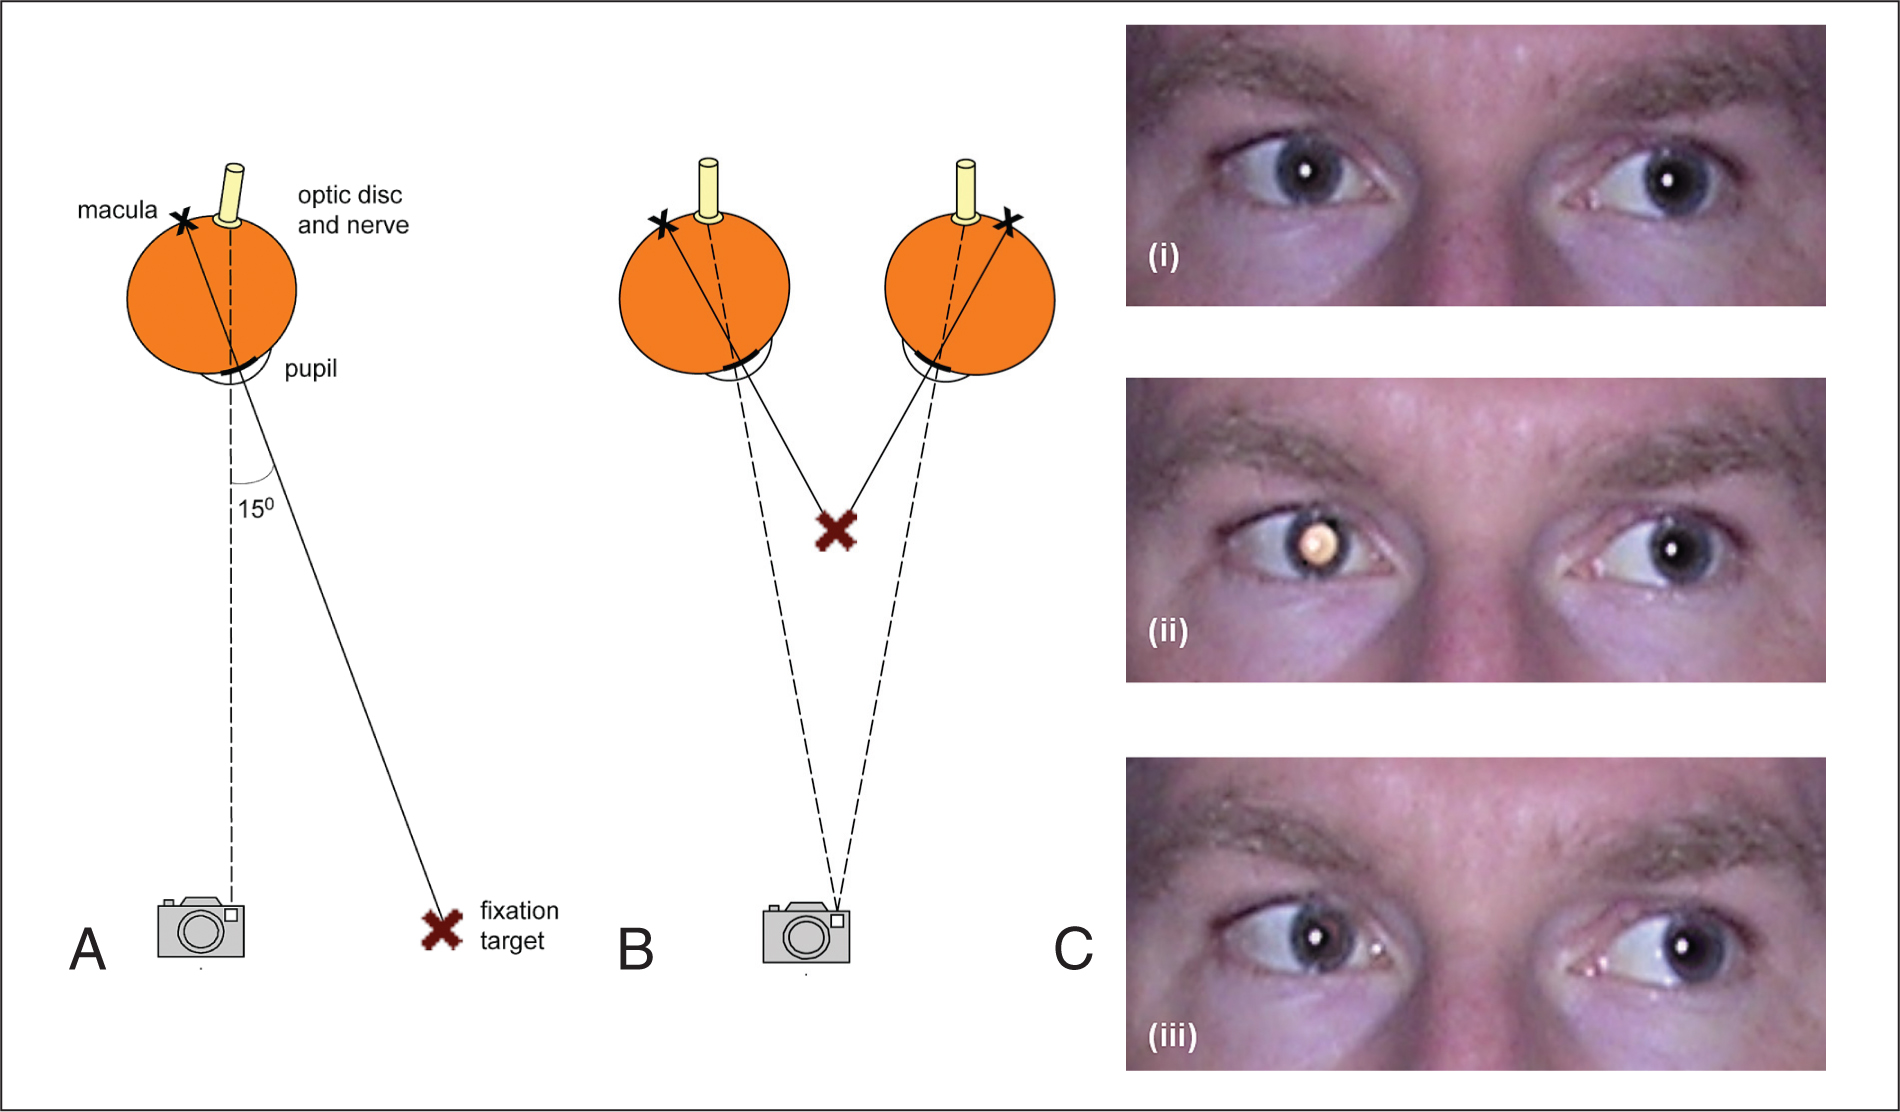 (A) The Right Eye of an Adult Demonstrating Illumination of the Optic Disc when There Is an Angle of 15° Between Fixation and Flash Illumination. (B) Convergence for near Fixation Allows Illumination of Both Optic Discs by the Camera Flash. With an Interpalpebral Distance of 54 mm, This Could Be Seen with a Fixation Target at 9.8 cm and the Camera at 3.83 cm. (C) Using a Camera Placed 120 cm from the Subject's Face and a Fixation Target Placed at Variable Distances to the Right of the Camera Flash, (i) No Leukocoria Is Produced with the Target at 28 cm (corresponding to an Angle of Approximately 13°), (ii) Right Leukocoria Is Produced with the Target at 32 cm (corresponding to an Angle of Approximately 15°), and (iii) No Leukocoria Is Produced with the Target at 36 cm (corresponding to an Angle of Approximately 17°).